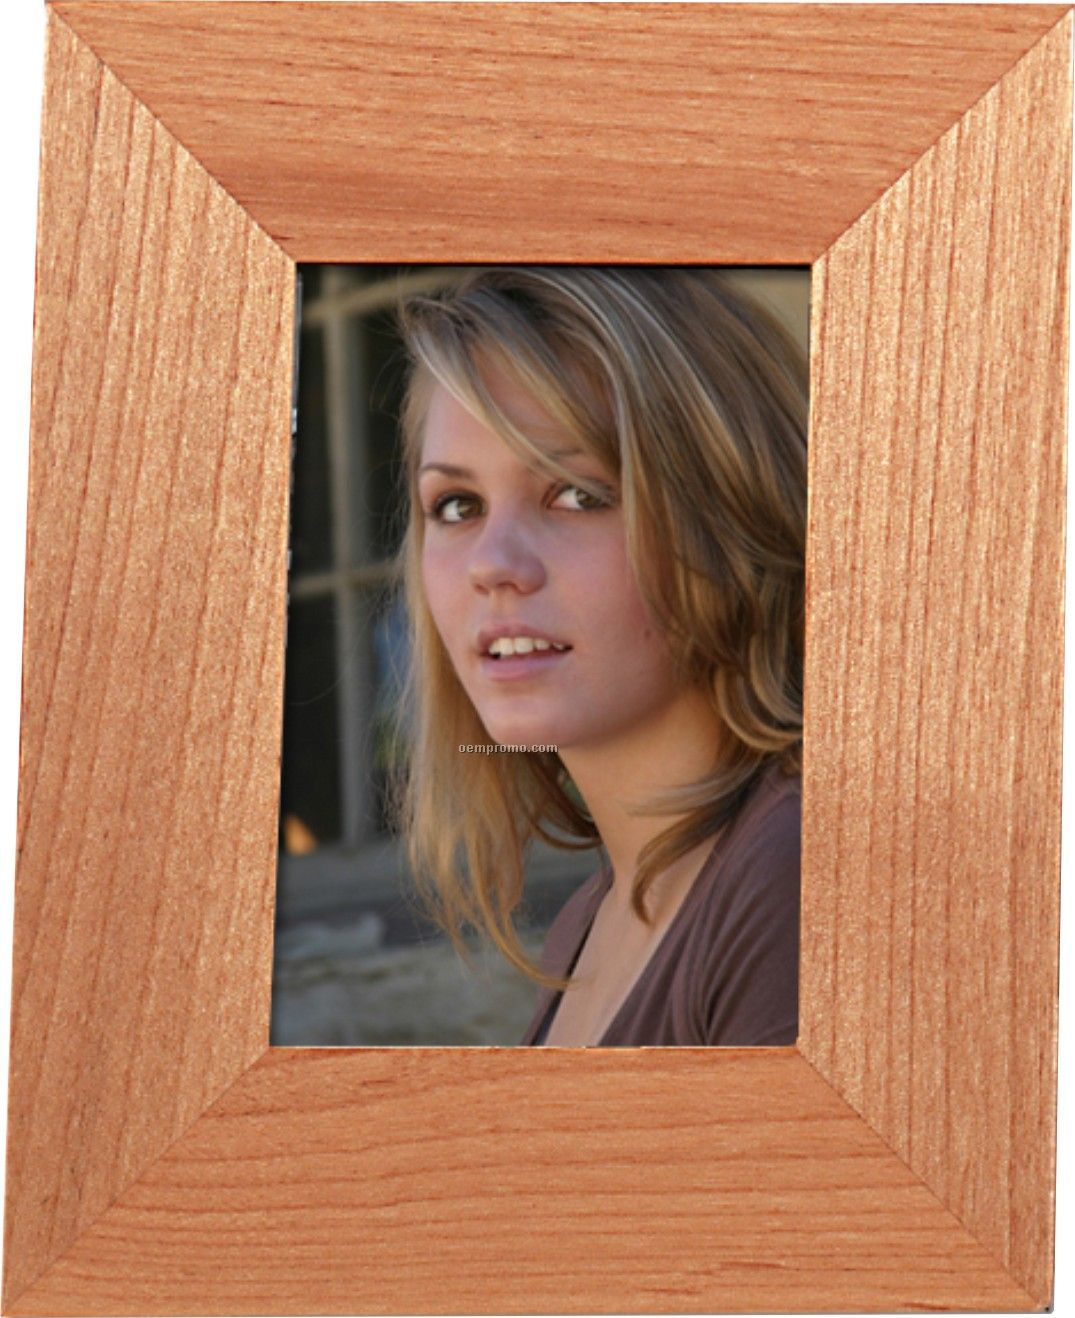 http://www.cygnetgifts.com/ekmps/shops/cygnetgifts/images/i-love-my-pet-photo-picture-frame-gift-5-x-3.5-[2]-6592-p.jpg